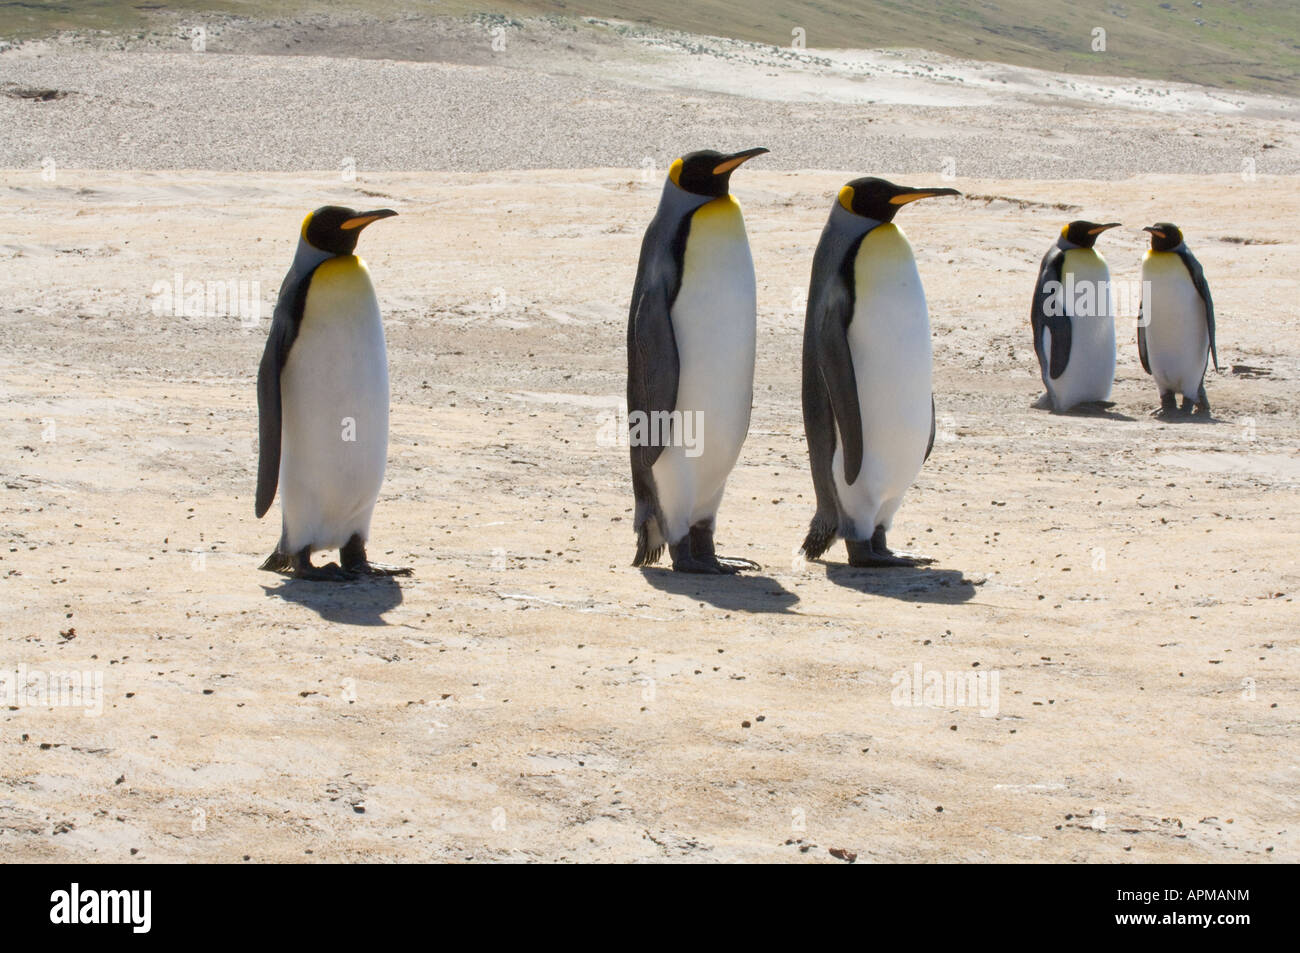 King penguins Aptenodytes patagonicus adults standing The Neck Saunders Island West Falkland South Atlantic Ocean - Stock Image